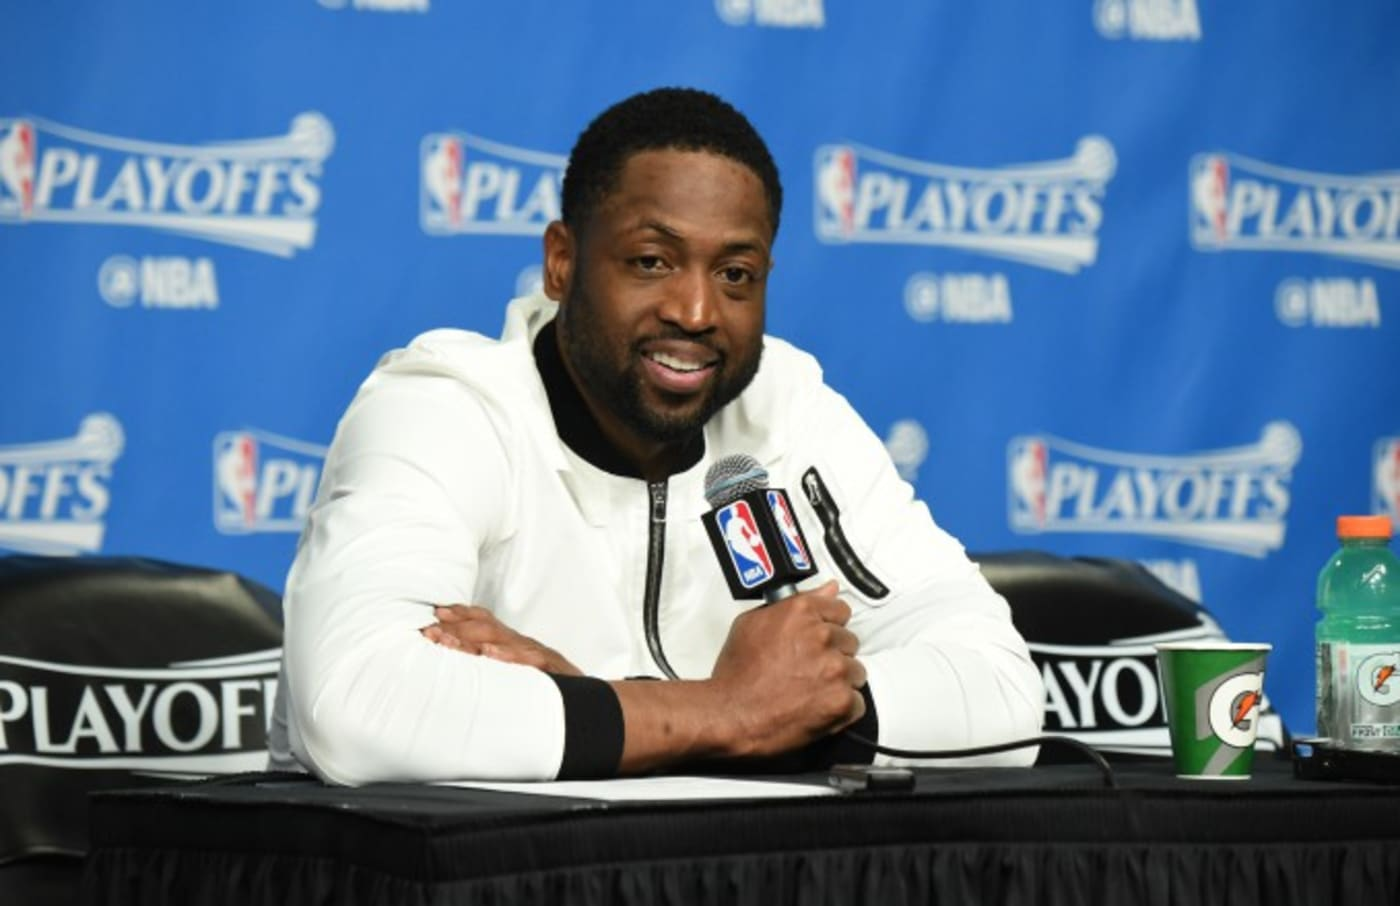 Dwyane Wade speaks with reporters after a playoff game.